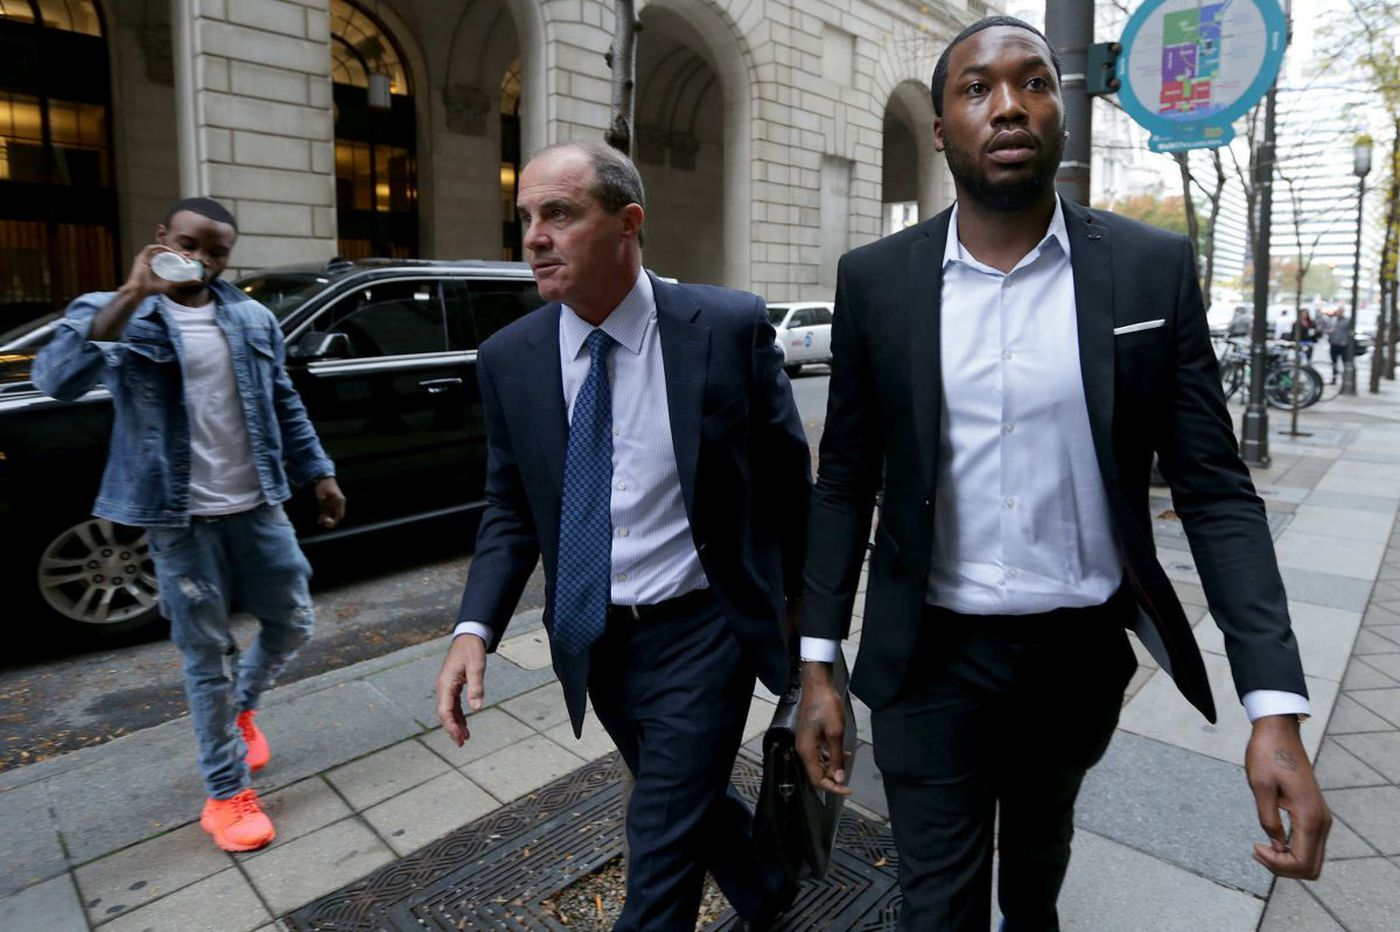 Meek Mill case is a sign of Probation Nation | Opinion